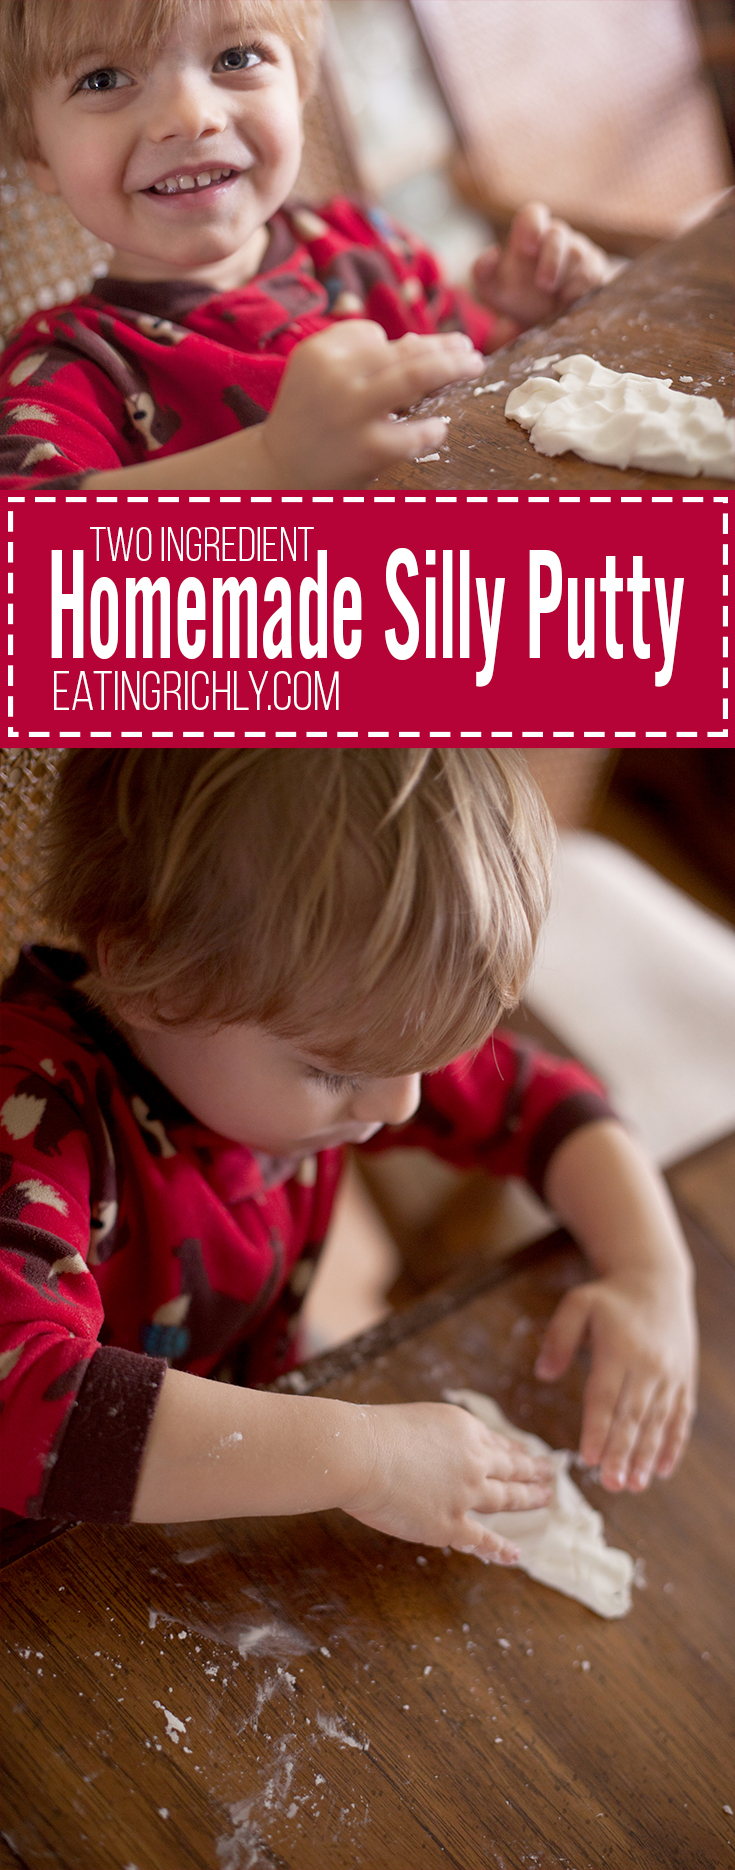 This homemade silly putty recipe uses only two ingredients that you probably already have at home. The perfect craft for boys who don't usually sit still. Part of #MiniChefMondays on EatingRichly.com